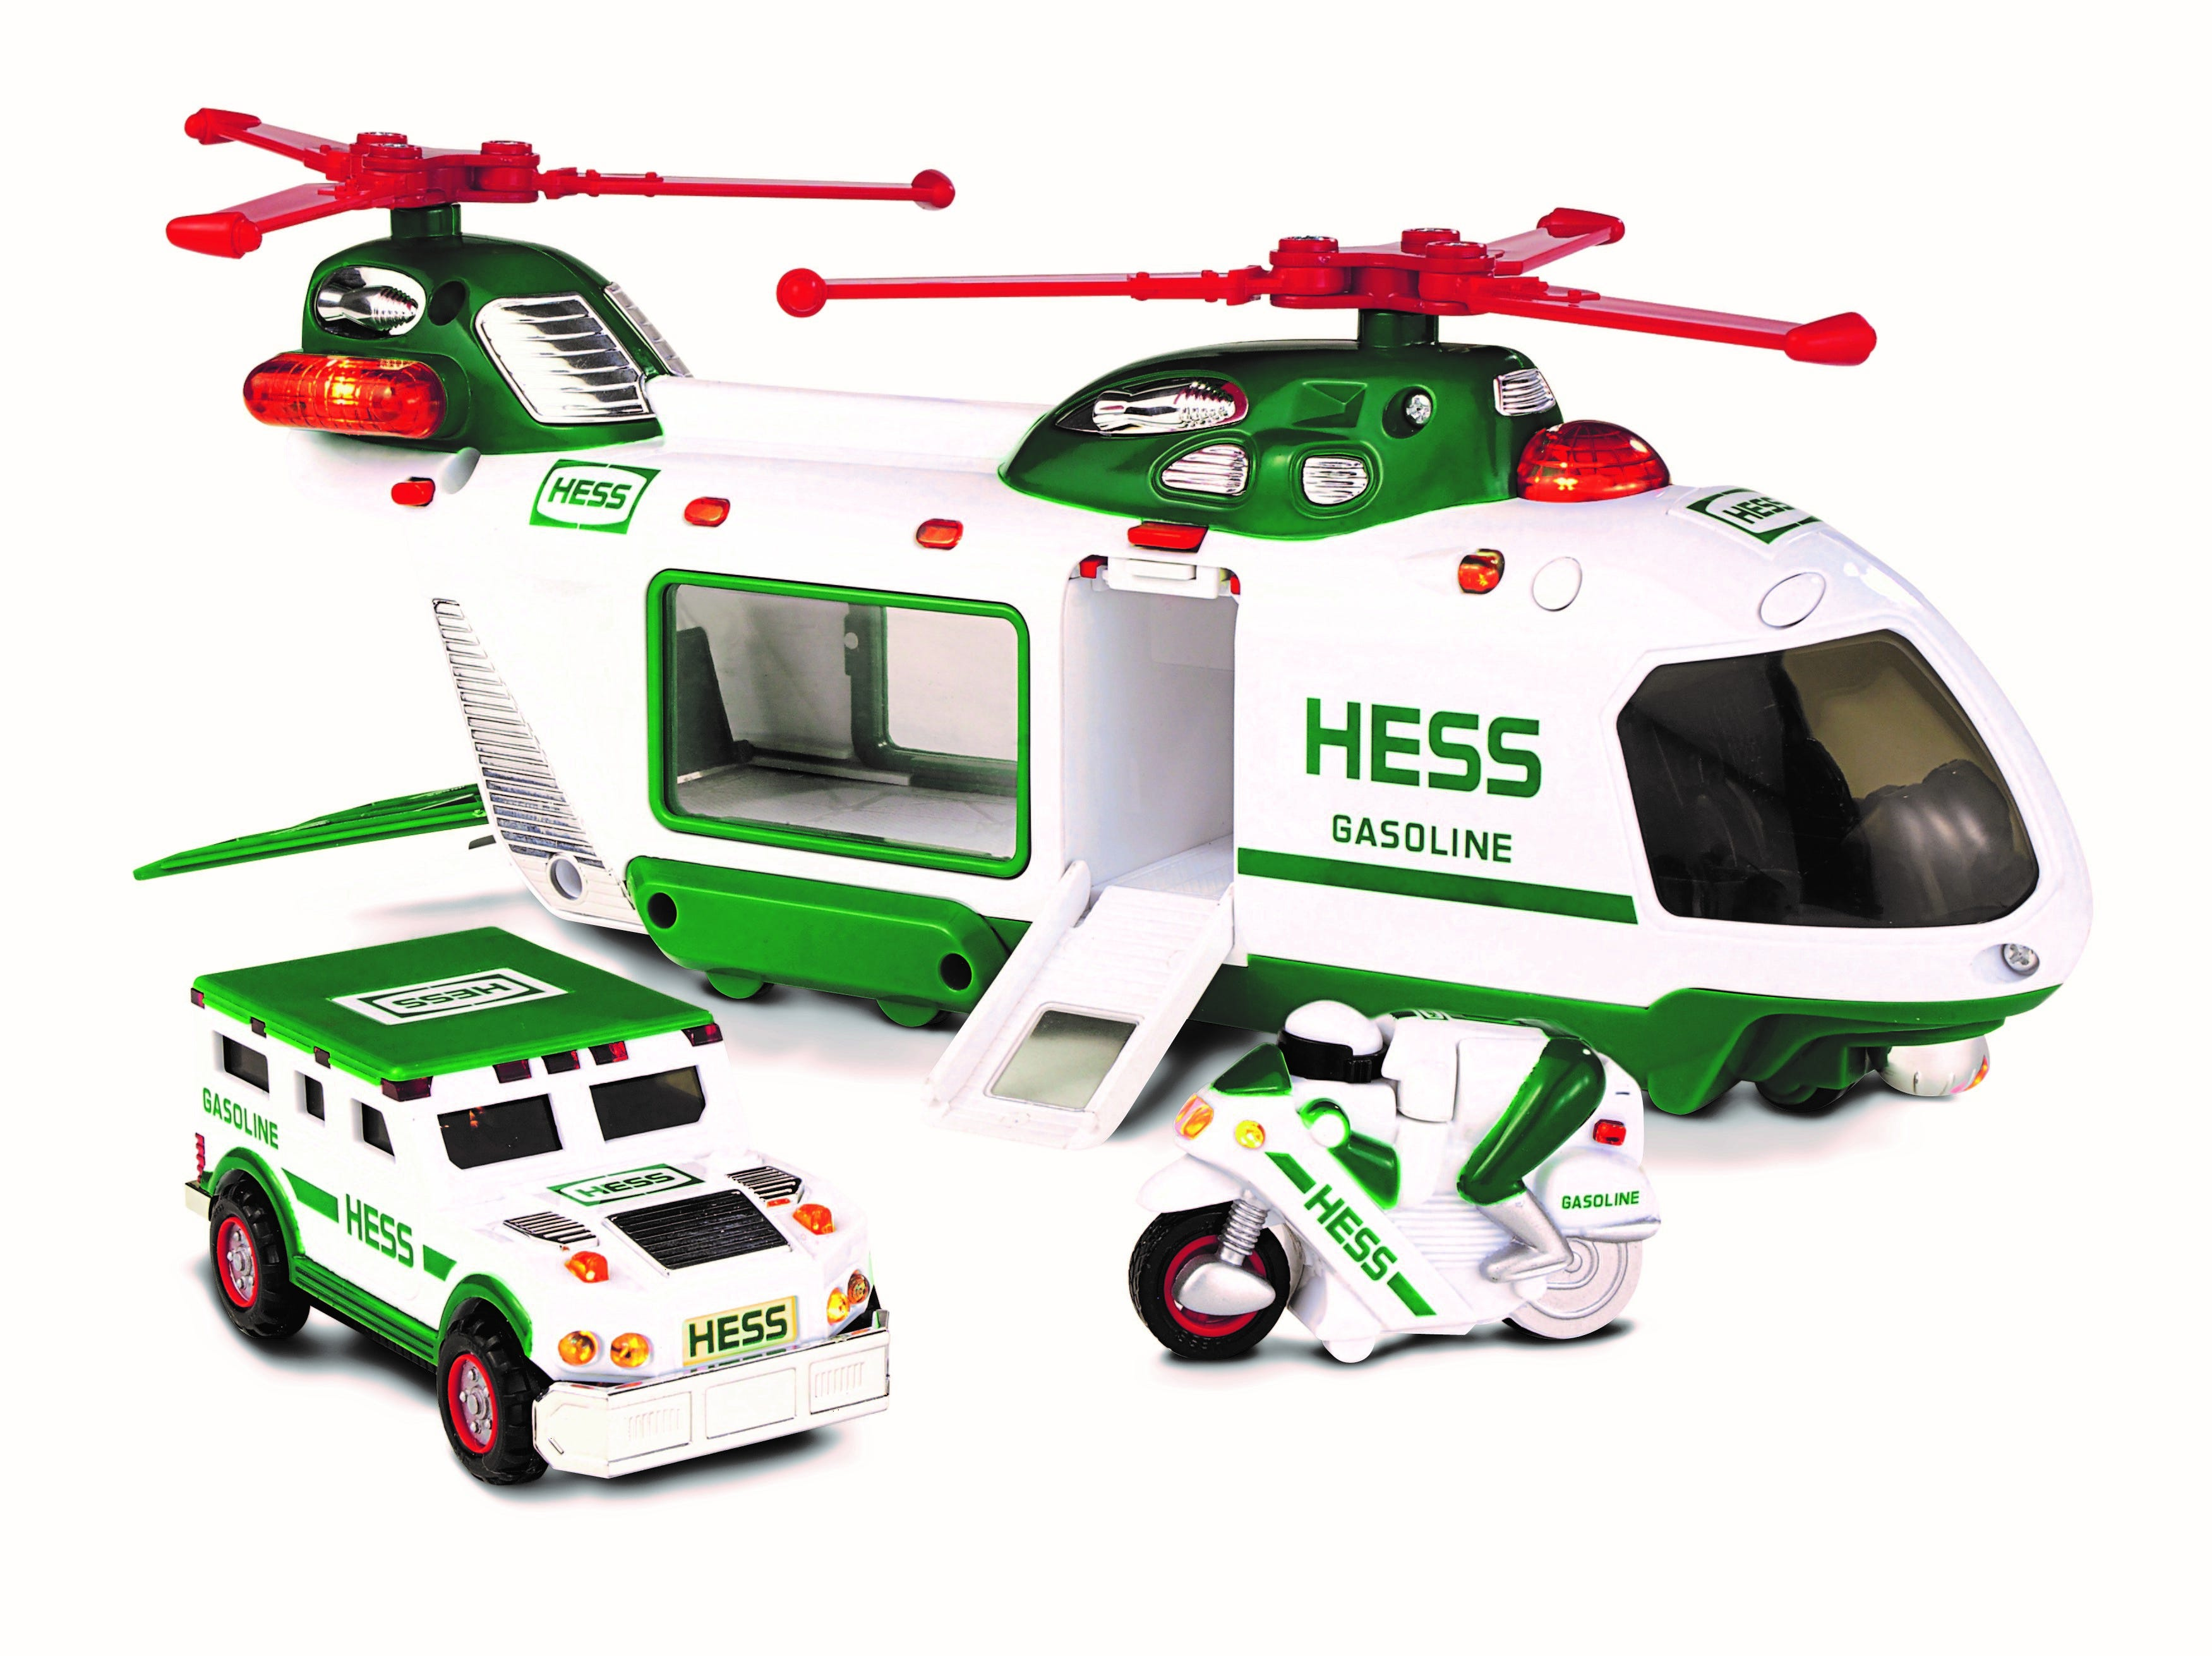 The 2001 Hess toy truck.